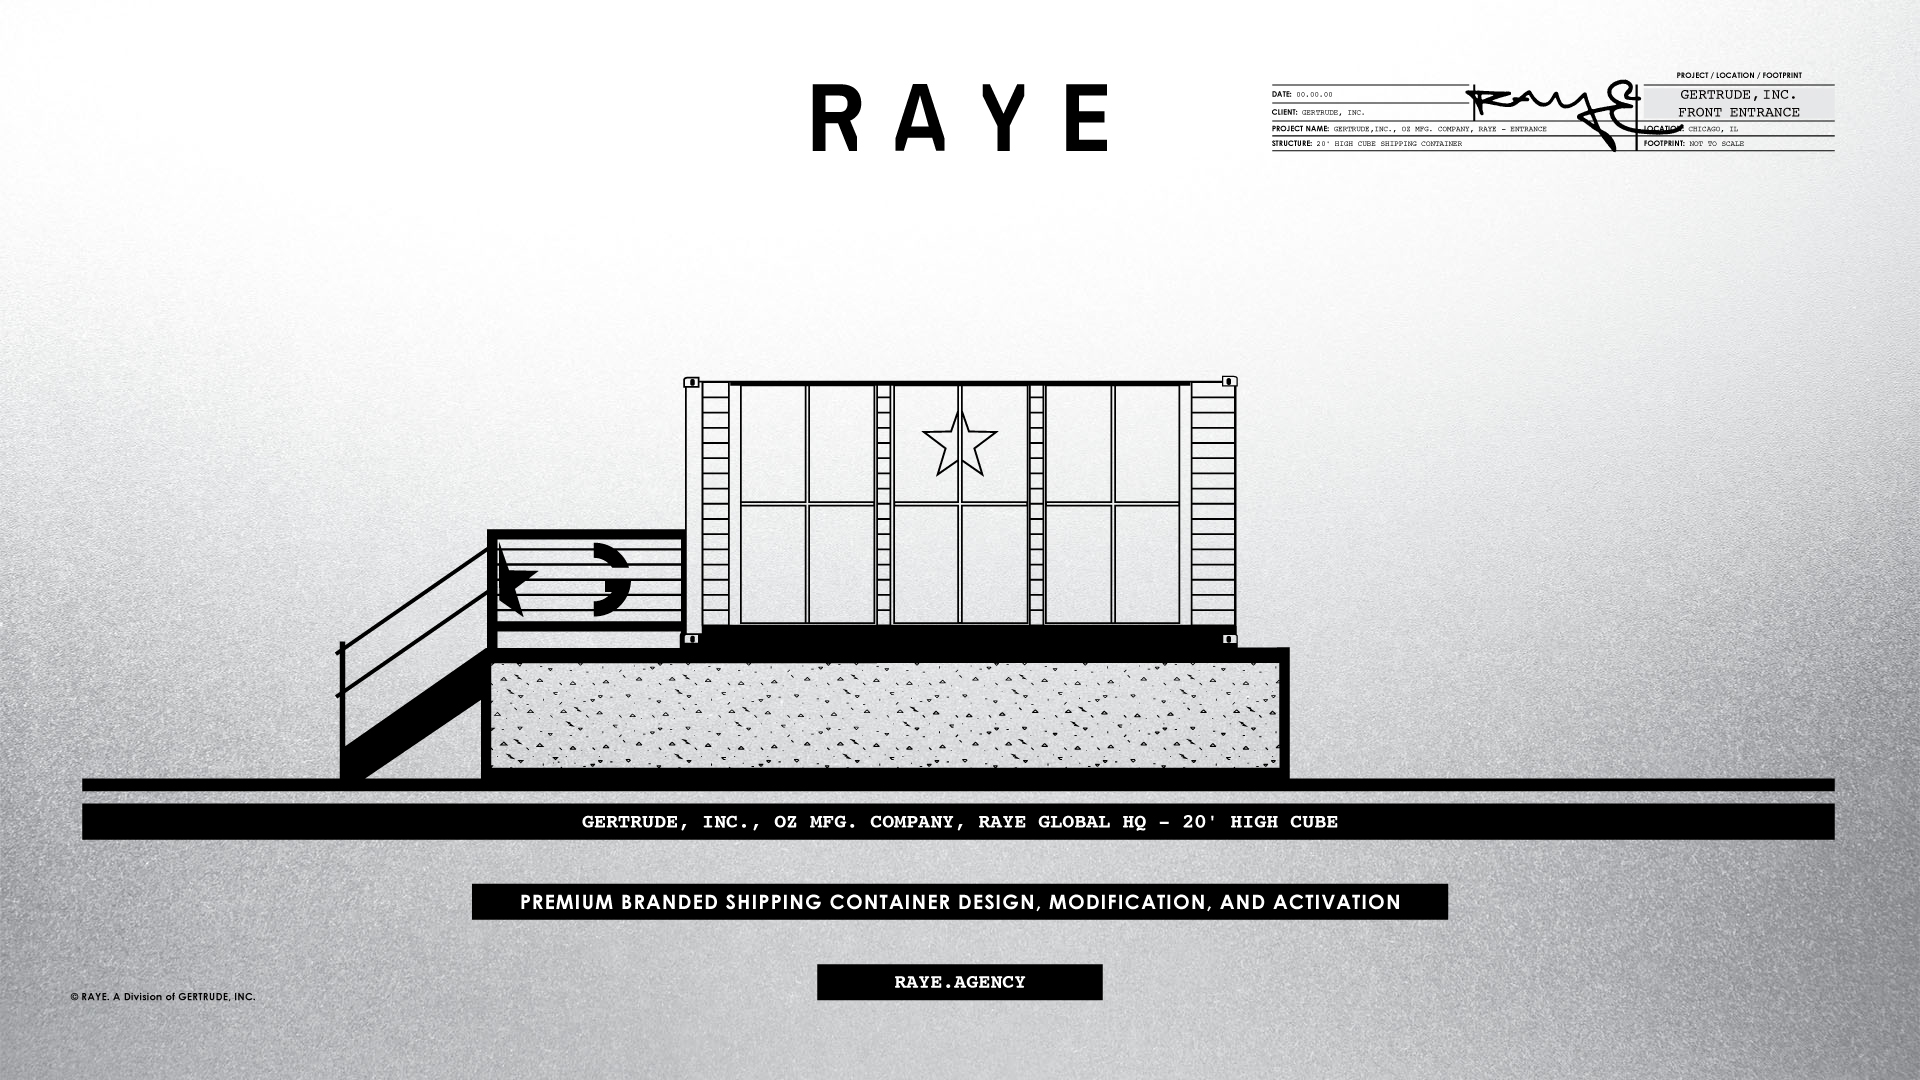 Gertrude, Inc. Raye Agency Shipping Container Main Entrance Schematic